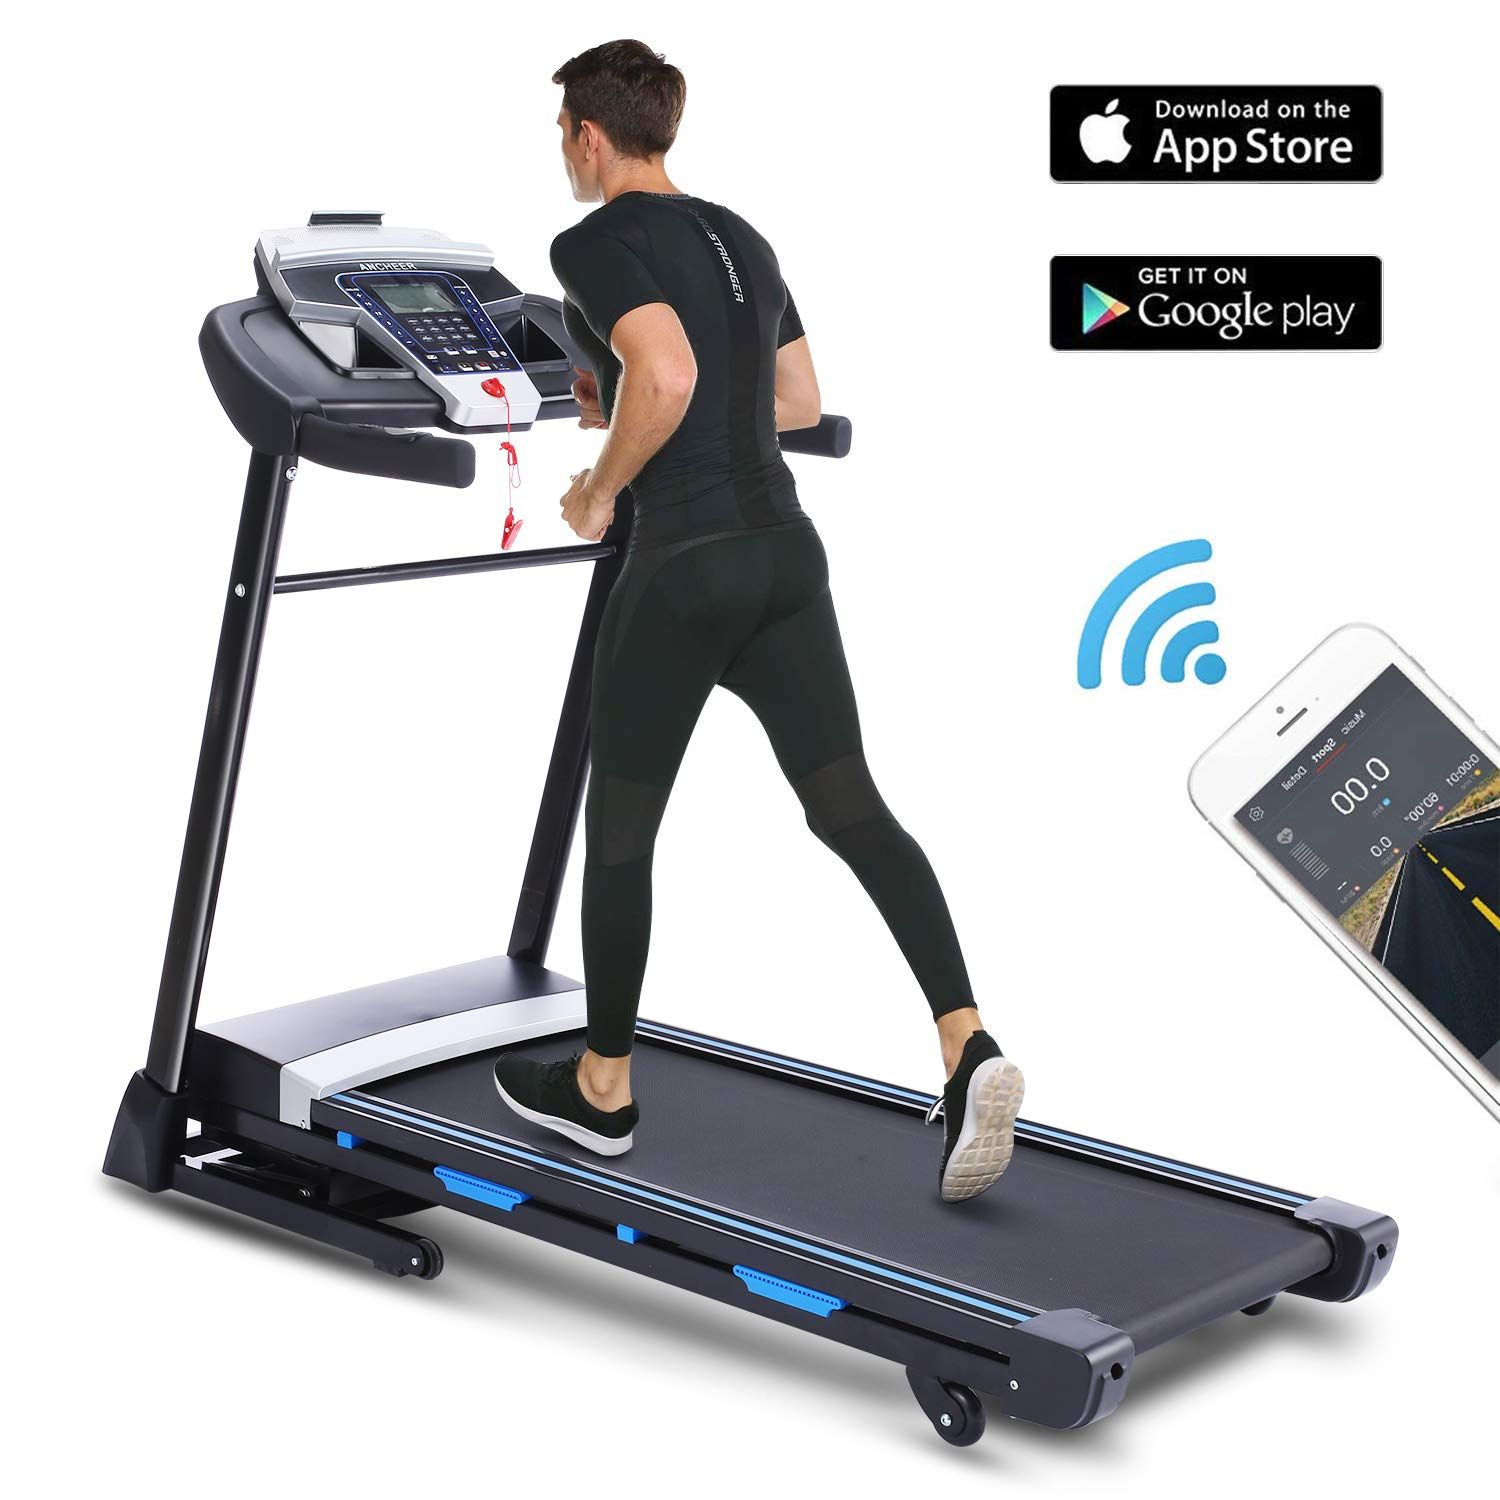 ANCHEER Folding Treadmill with APP Control, 3.25HP